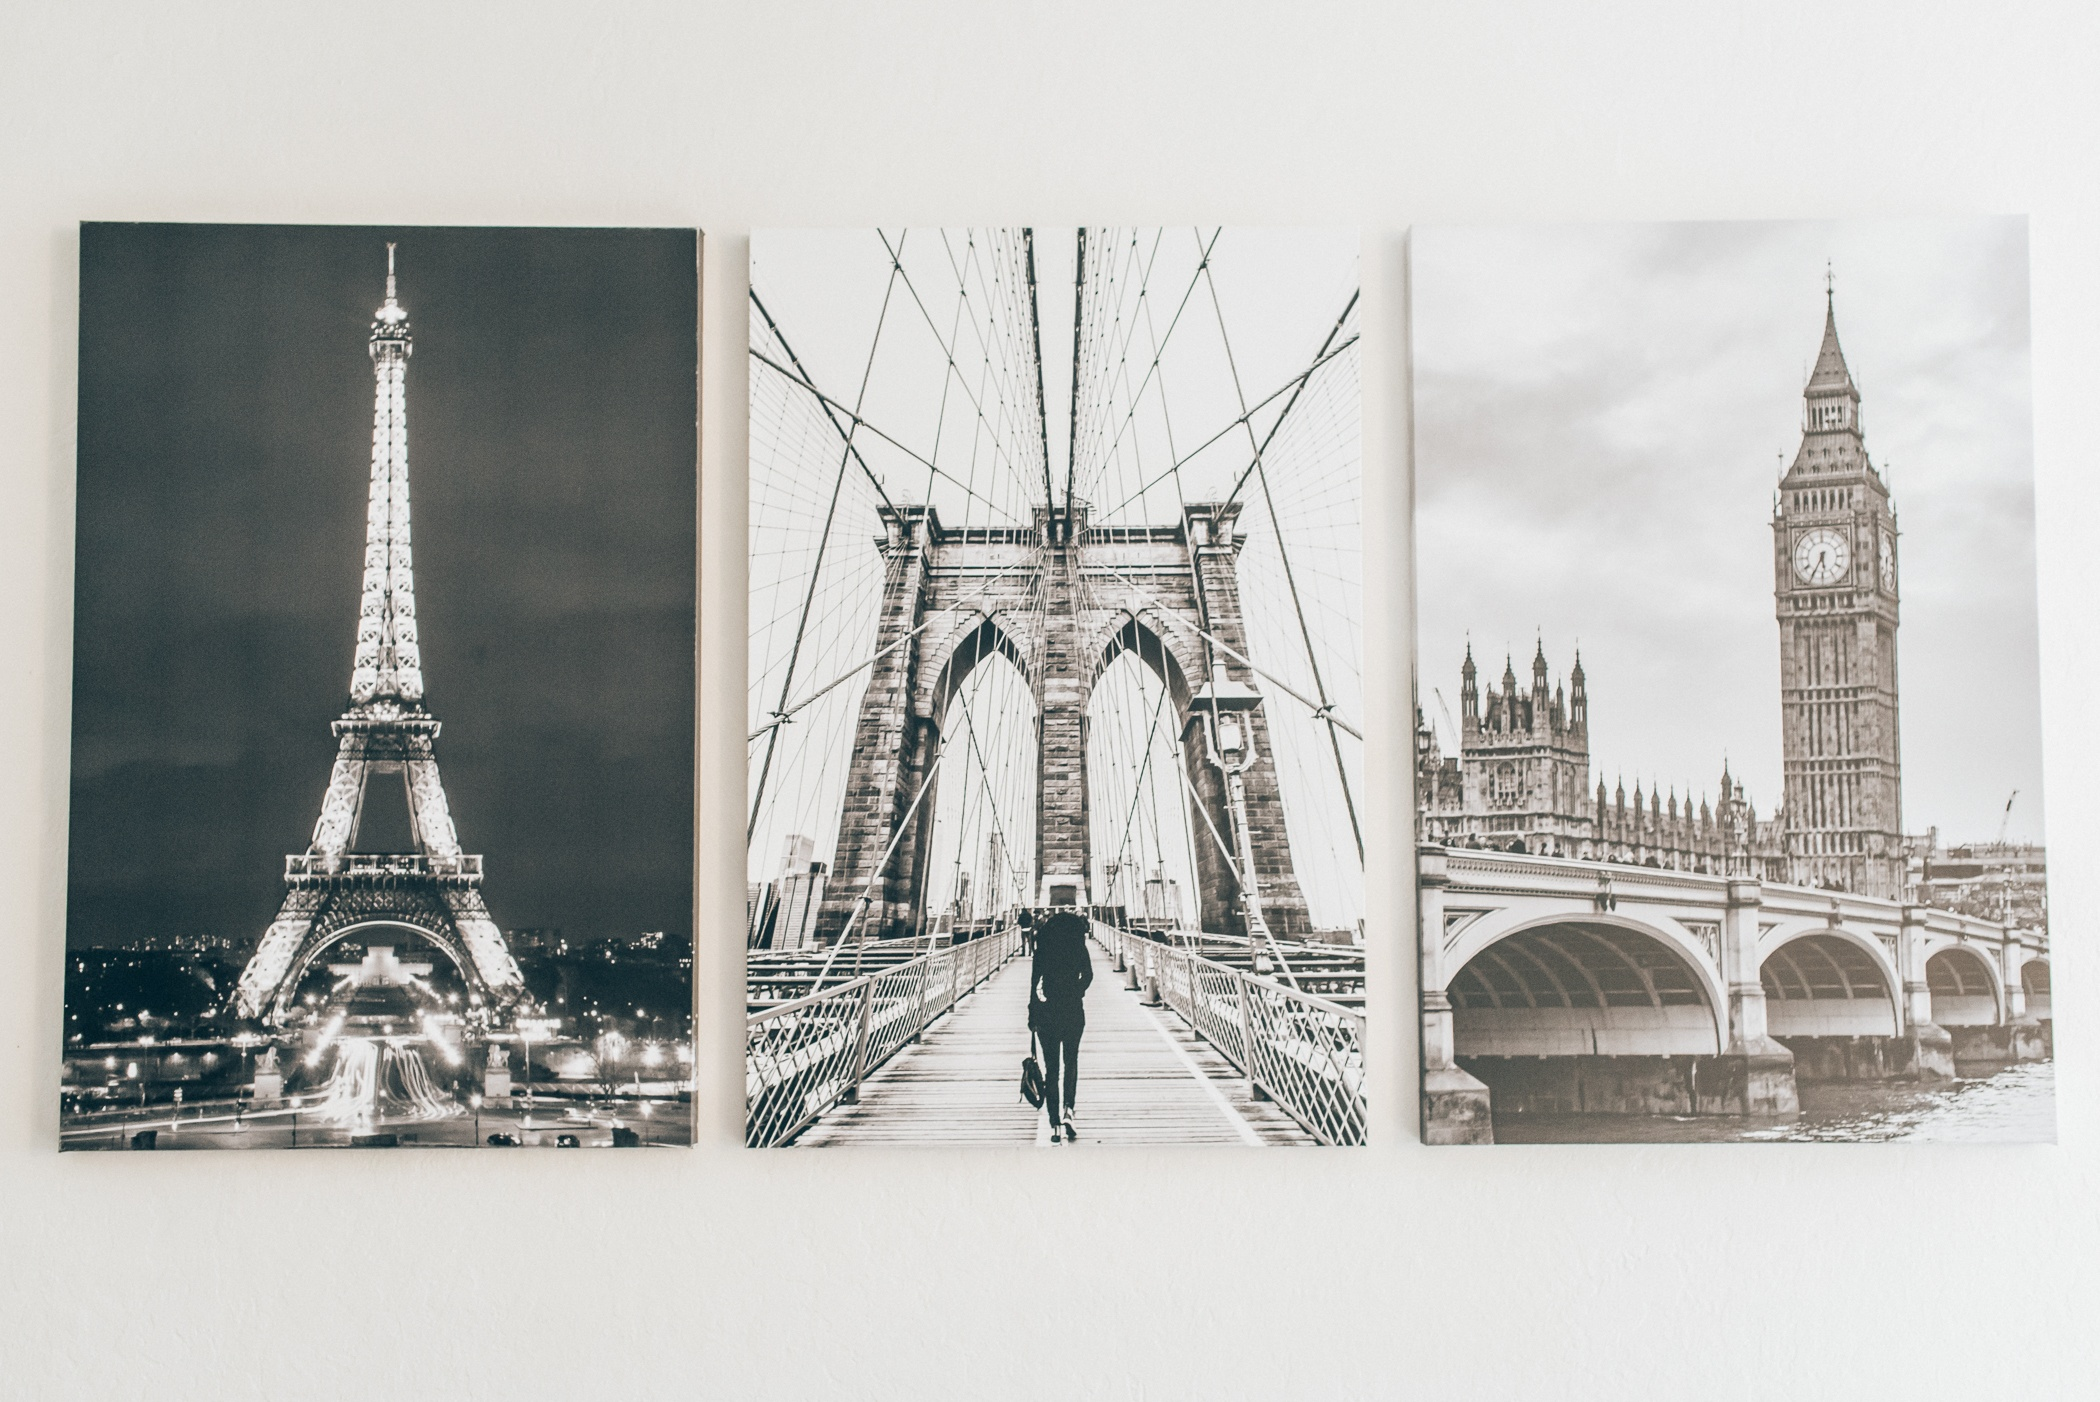 Mixbook Review: Decorating our home with canvas prints from Mixbook